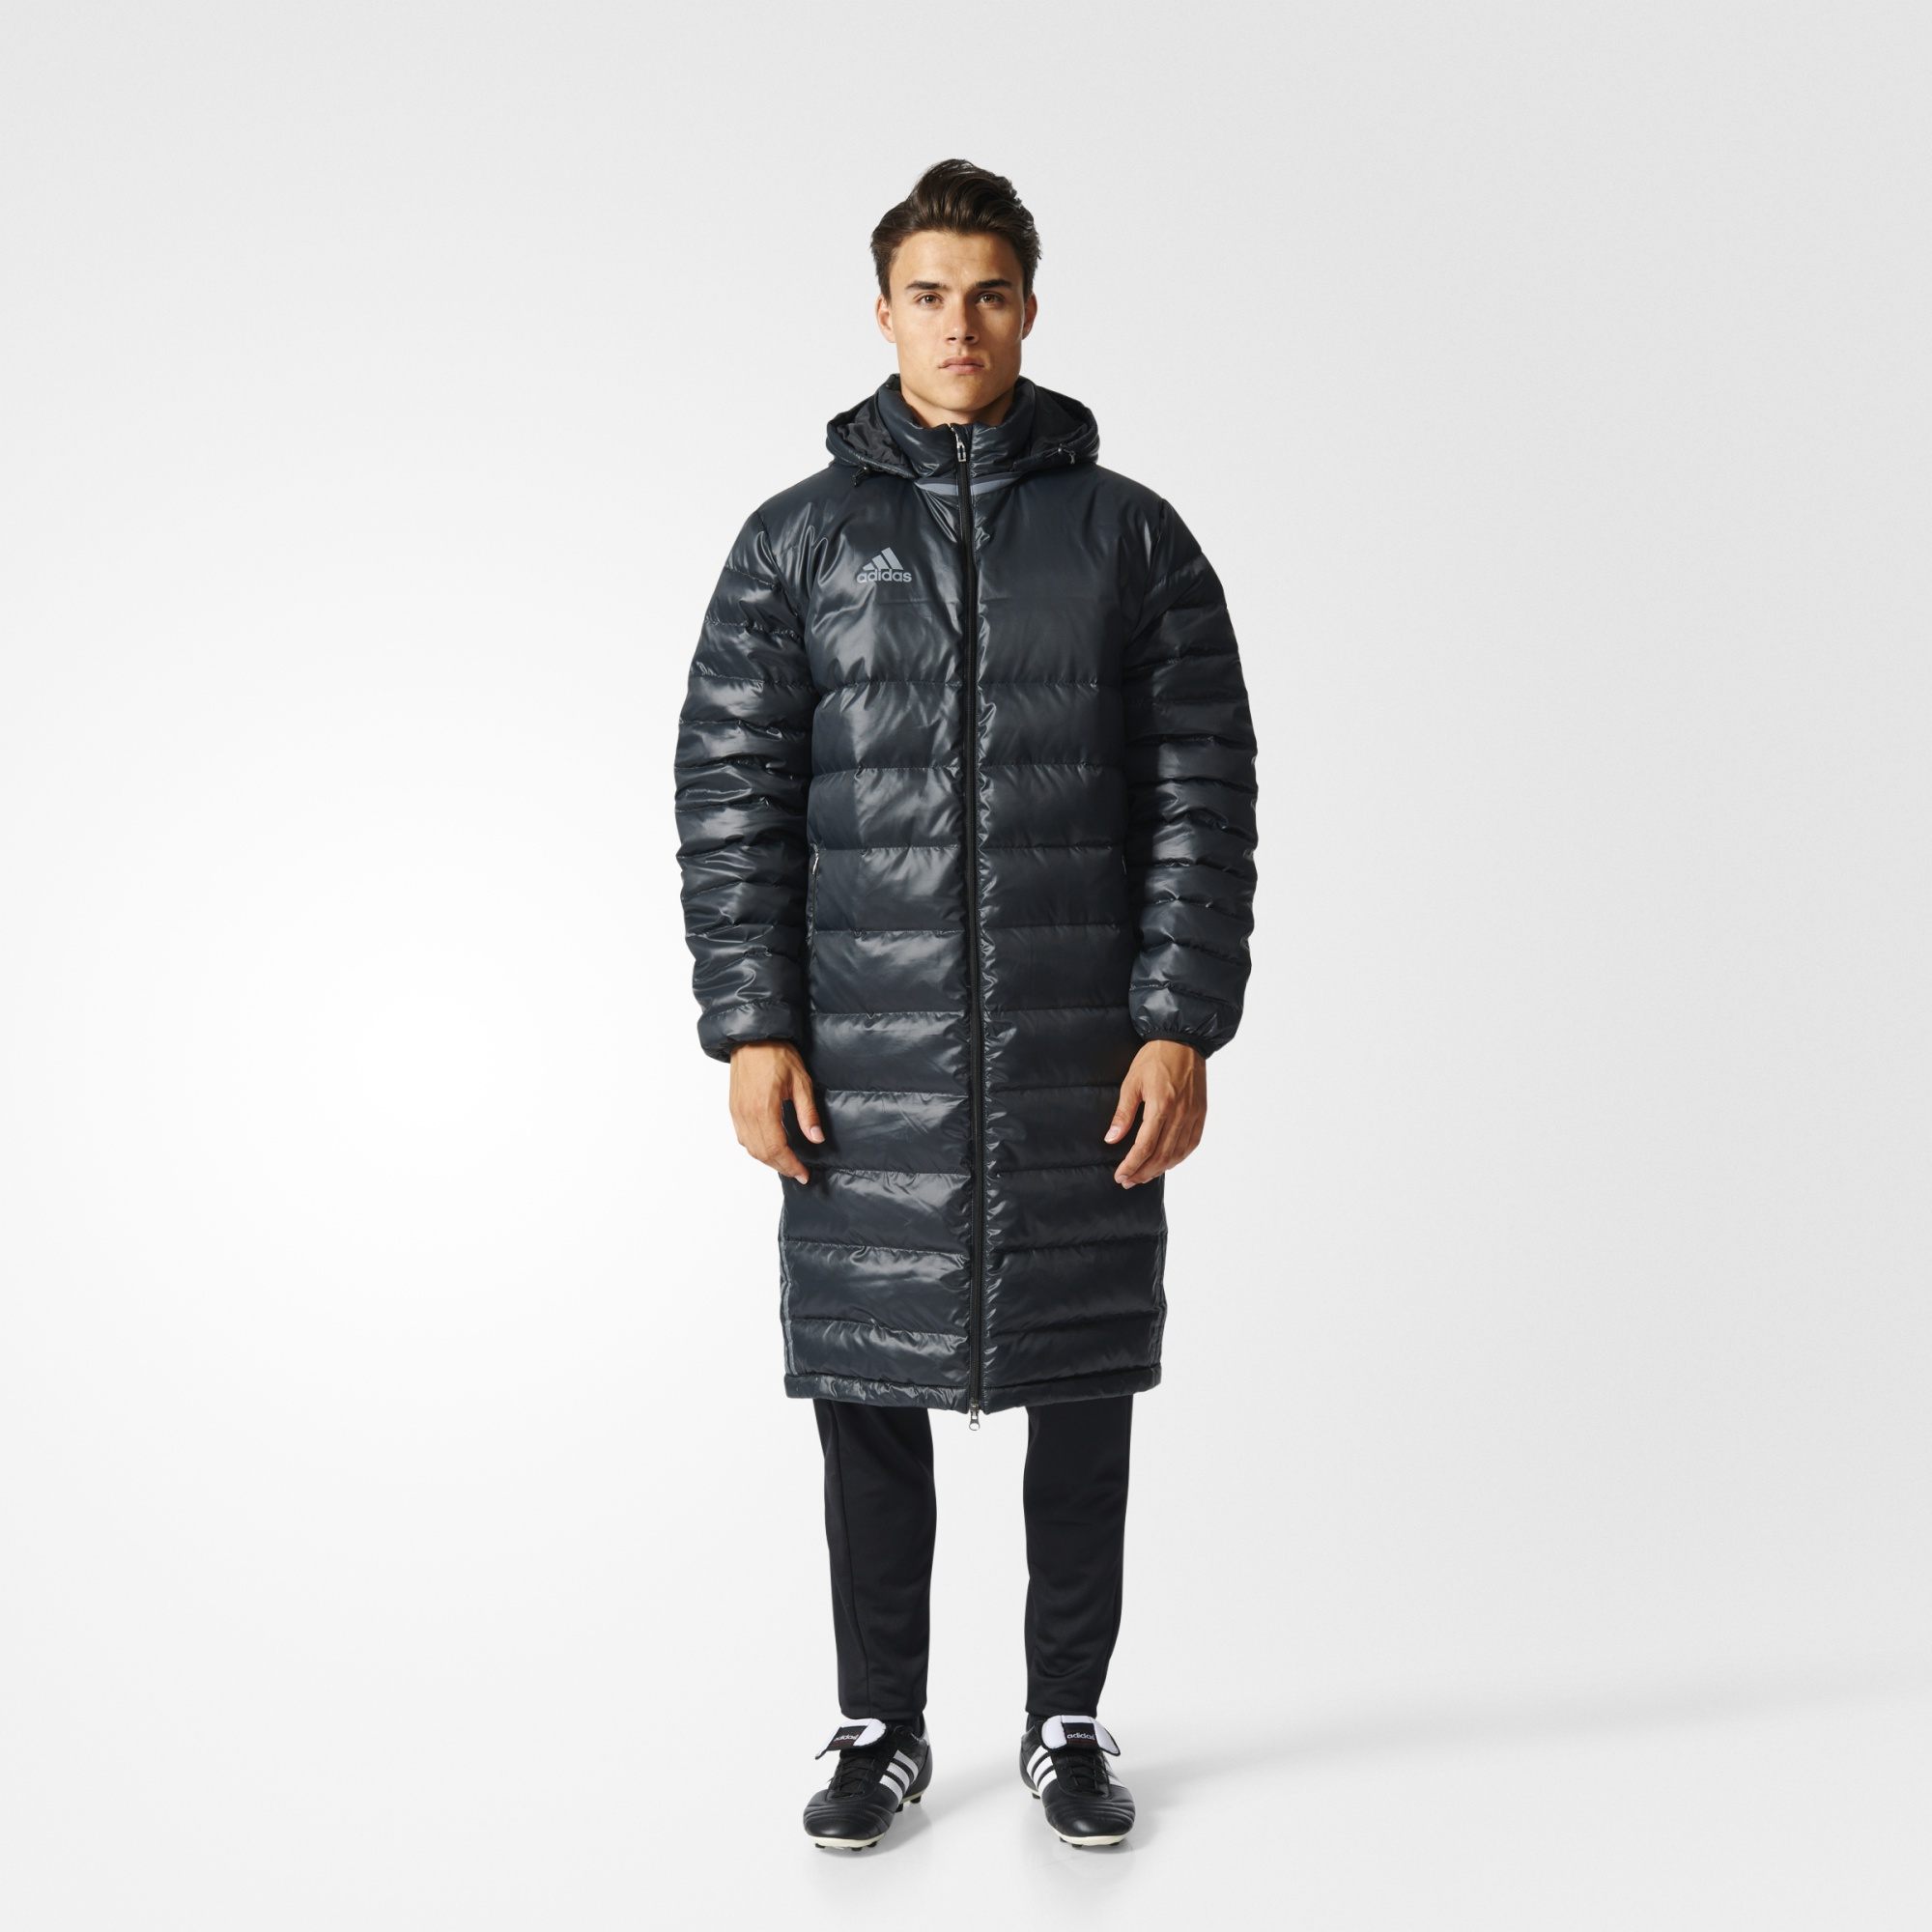 Overcoat Adidas AX6458 sports and entertainment for men